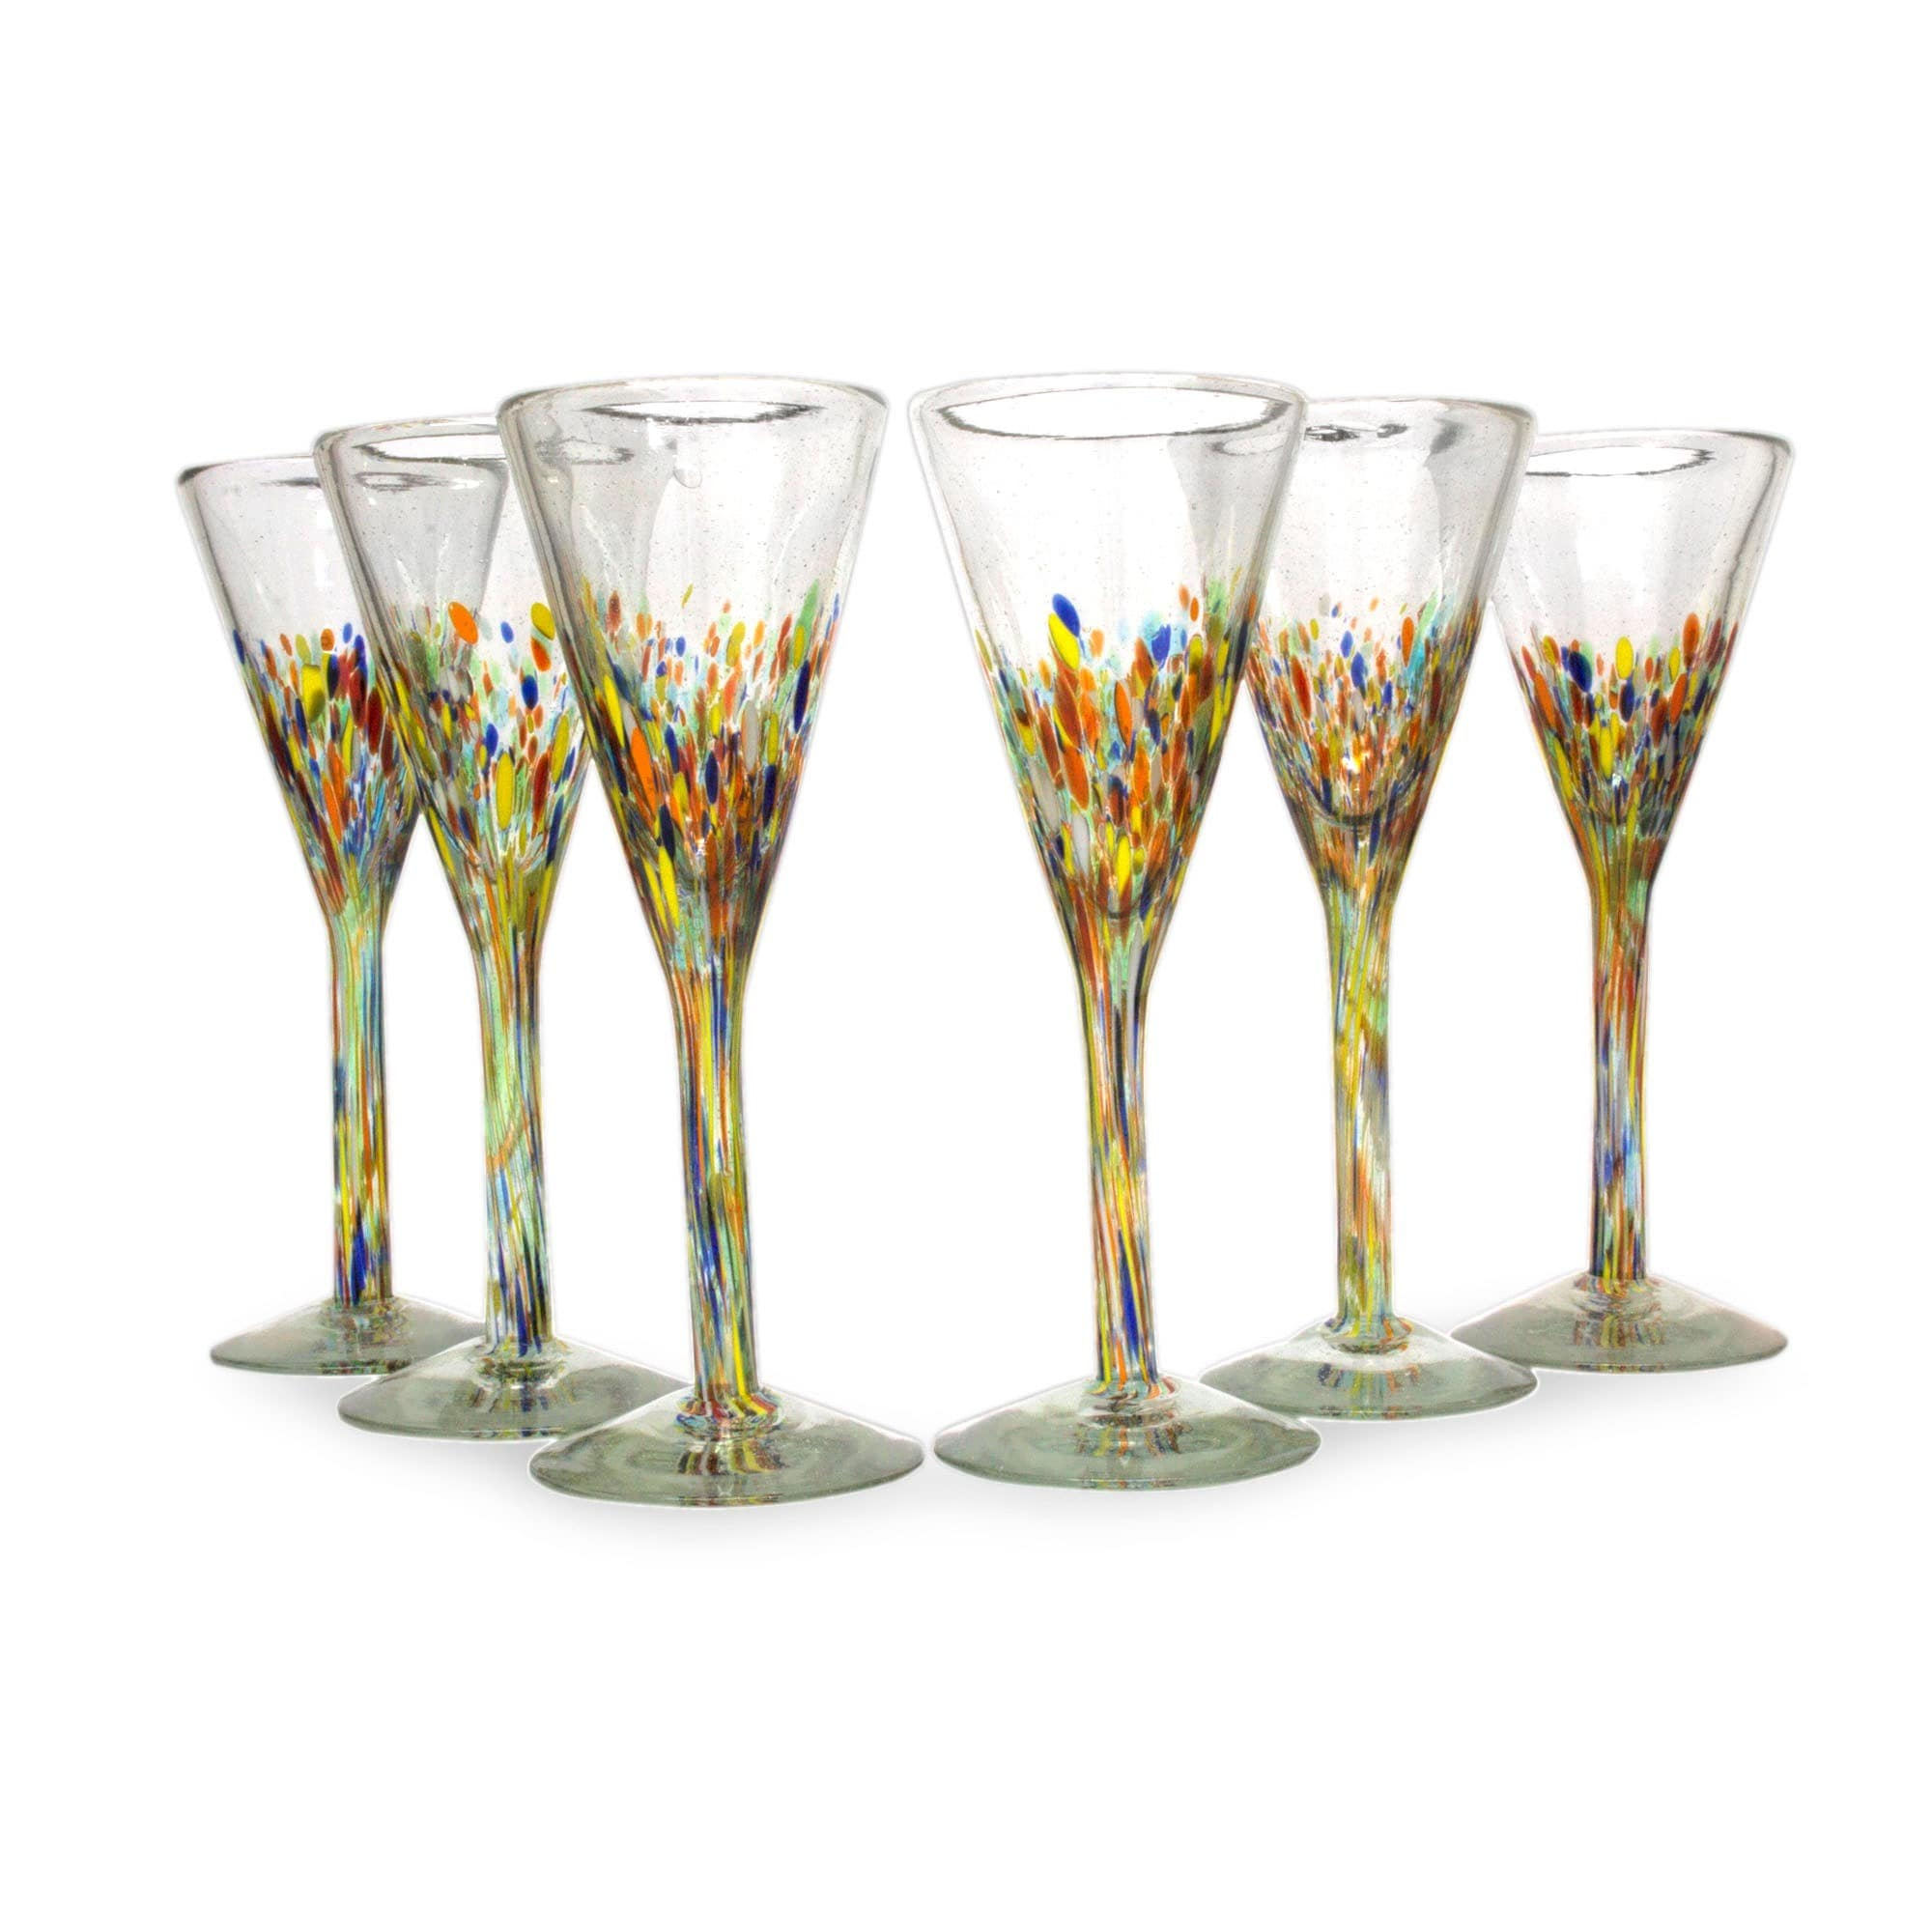 Flute A Champagne Original Handmade 6 Piece Set Of Speckled Barware Unique Confetti Carnival Modern Hand Blown Glass Champagne Flutes Mexico